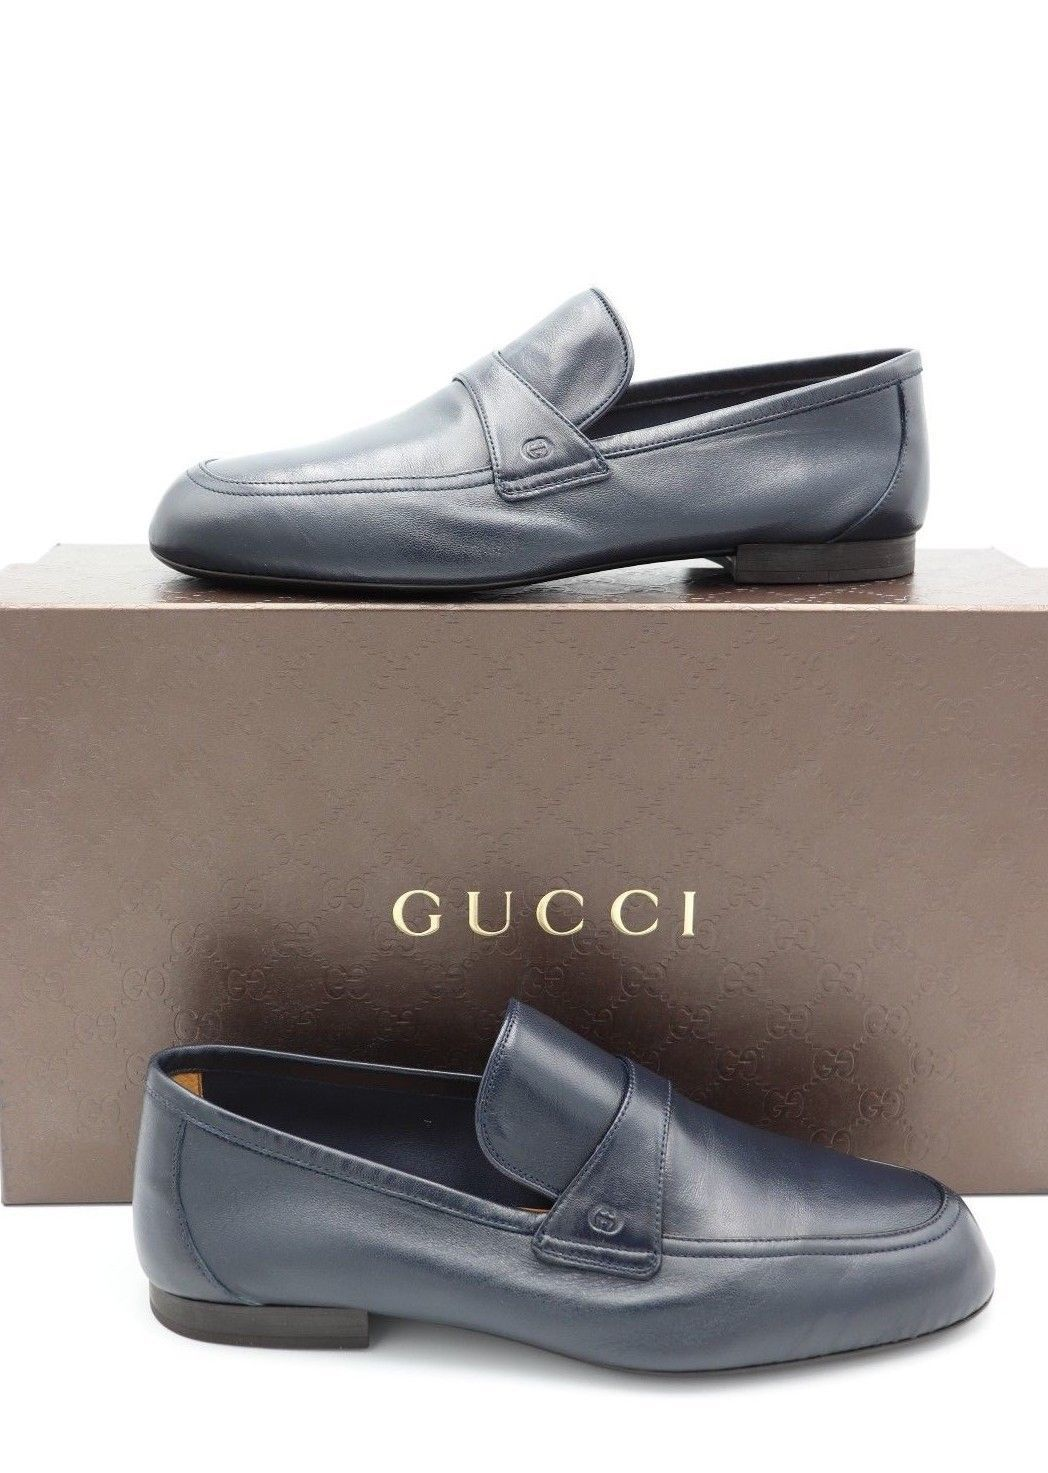 27d5855485f NIB Gucci Mens Unlined Navy Blue Leather and 50 similar items. S l1600